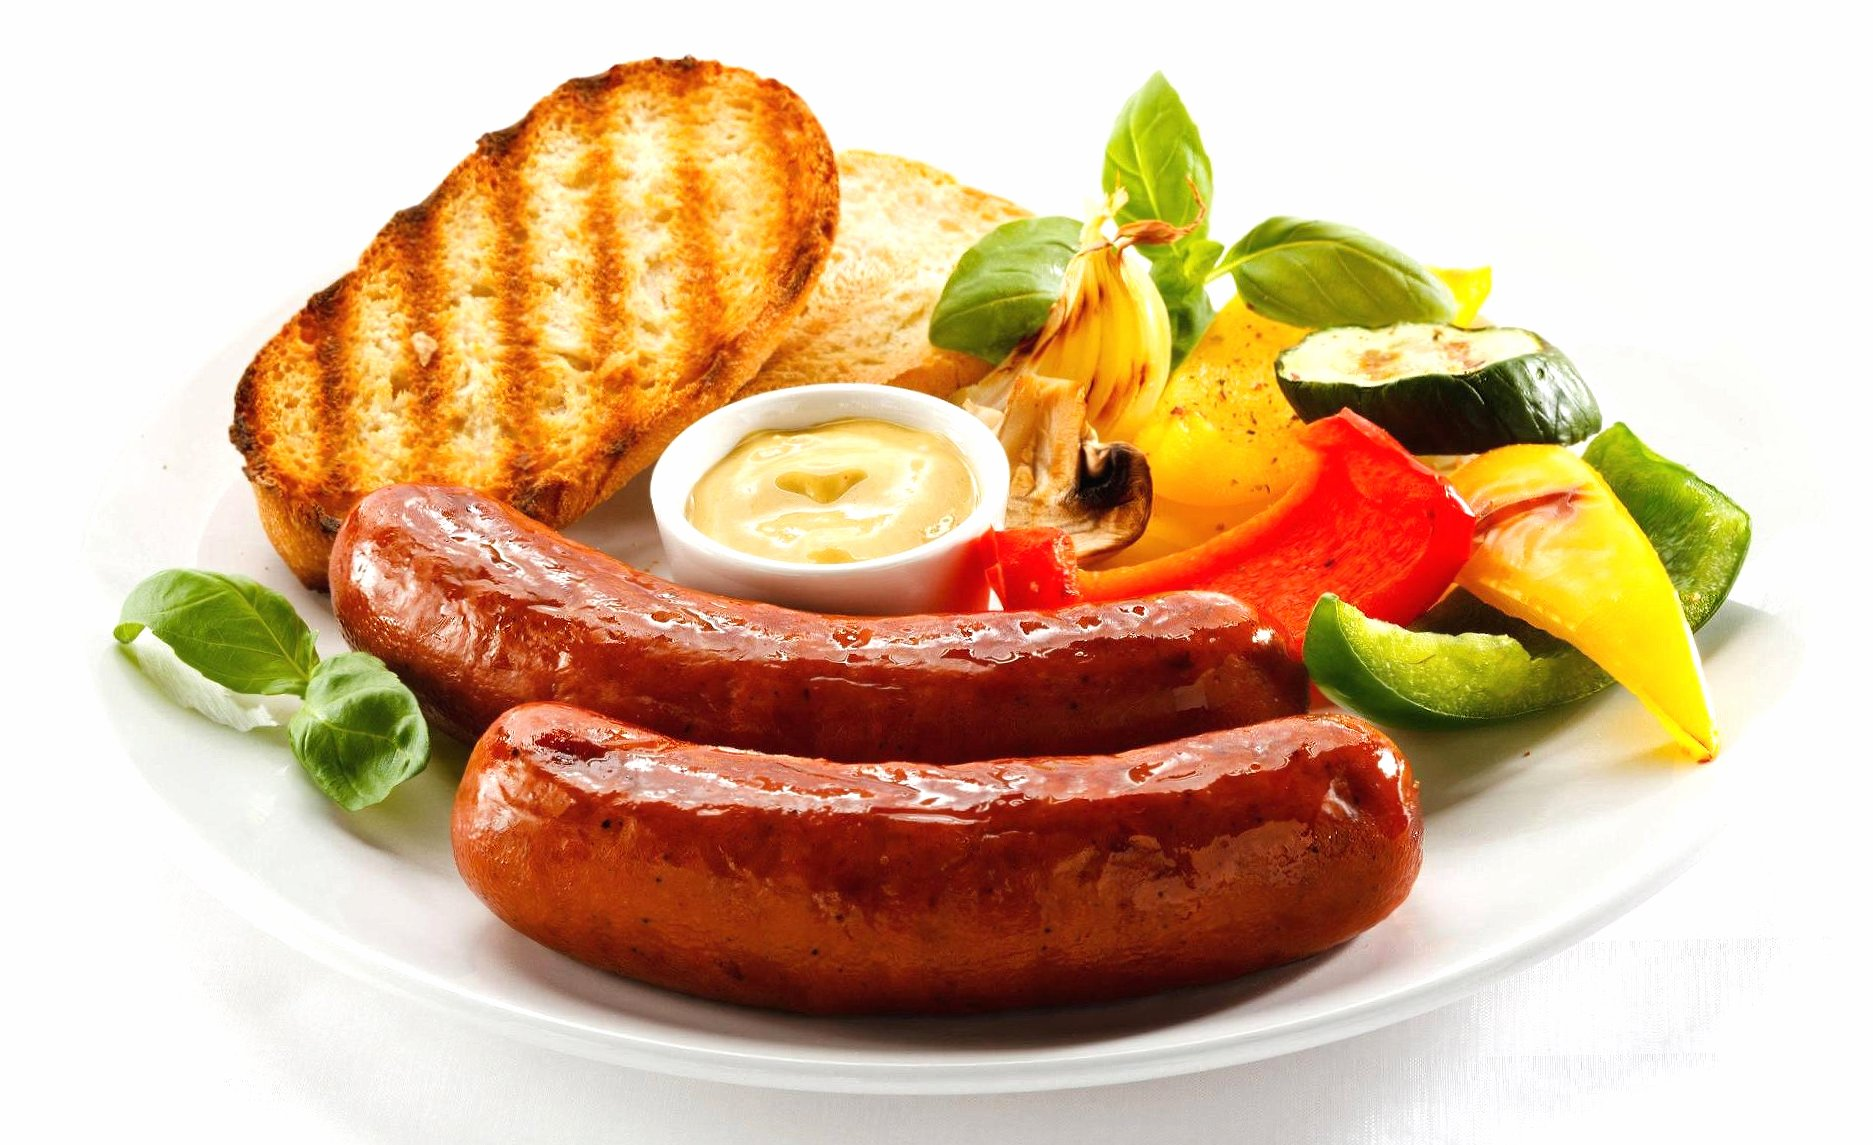 Sausages wallpapers HD quality